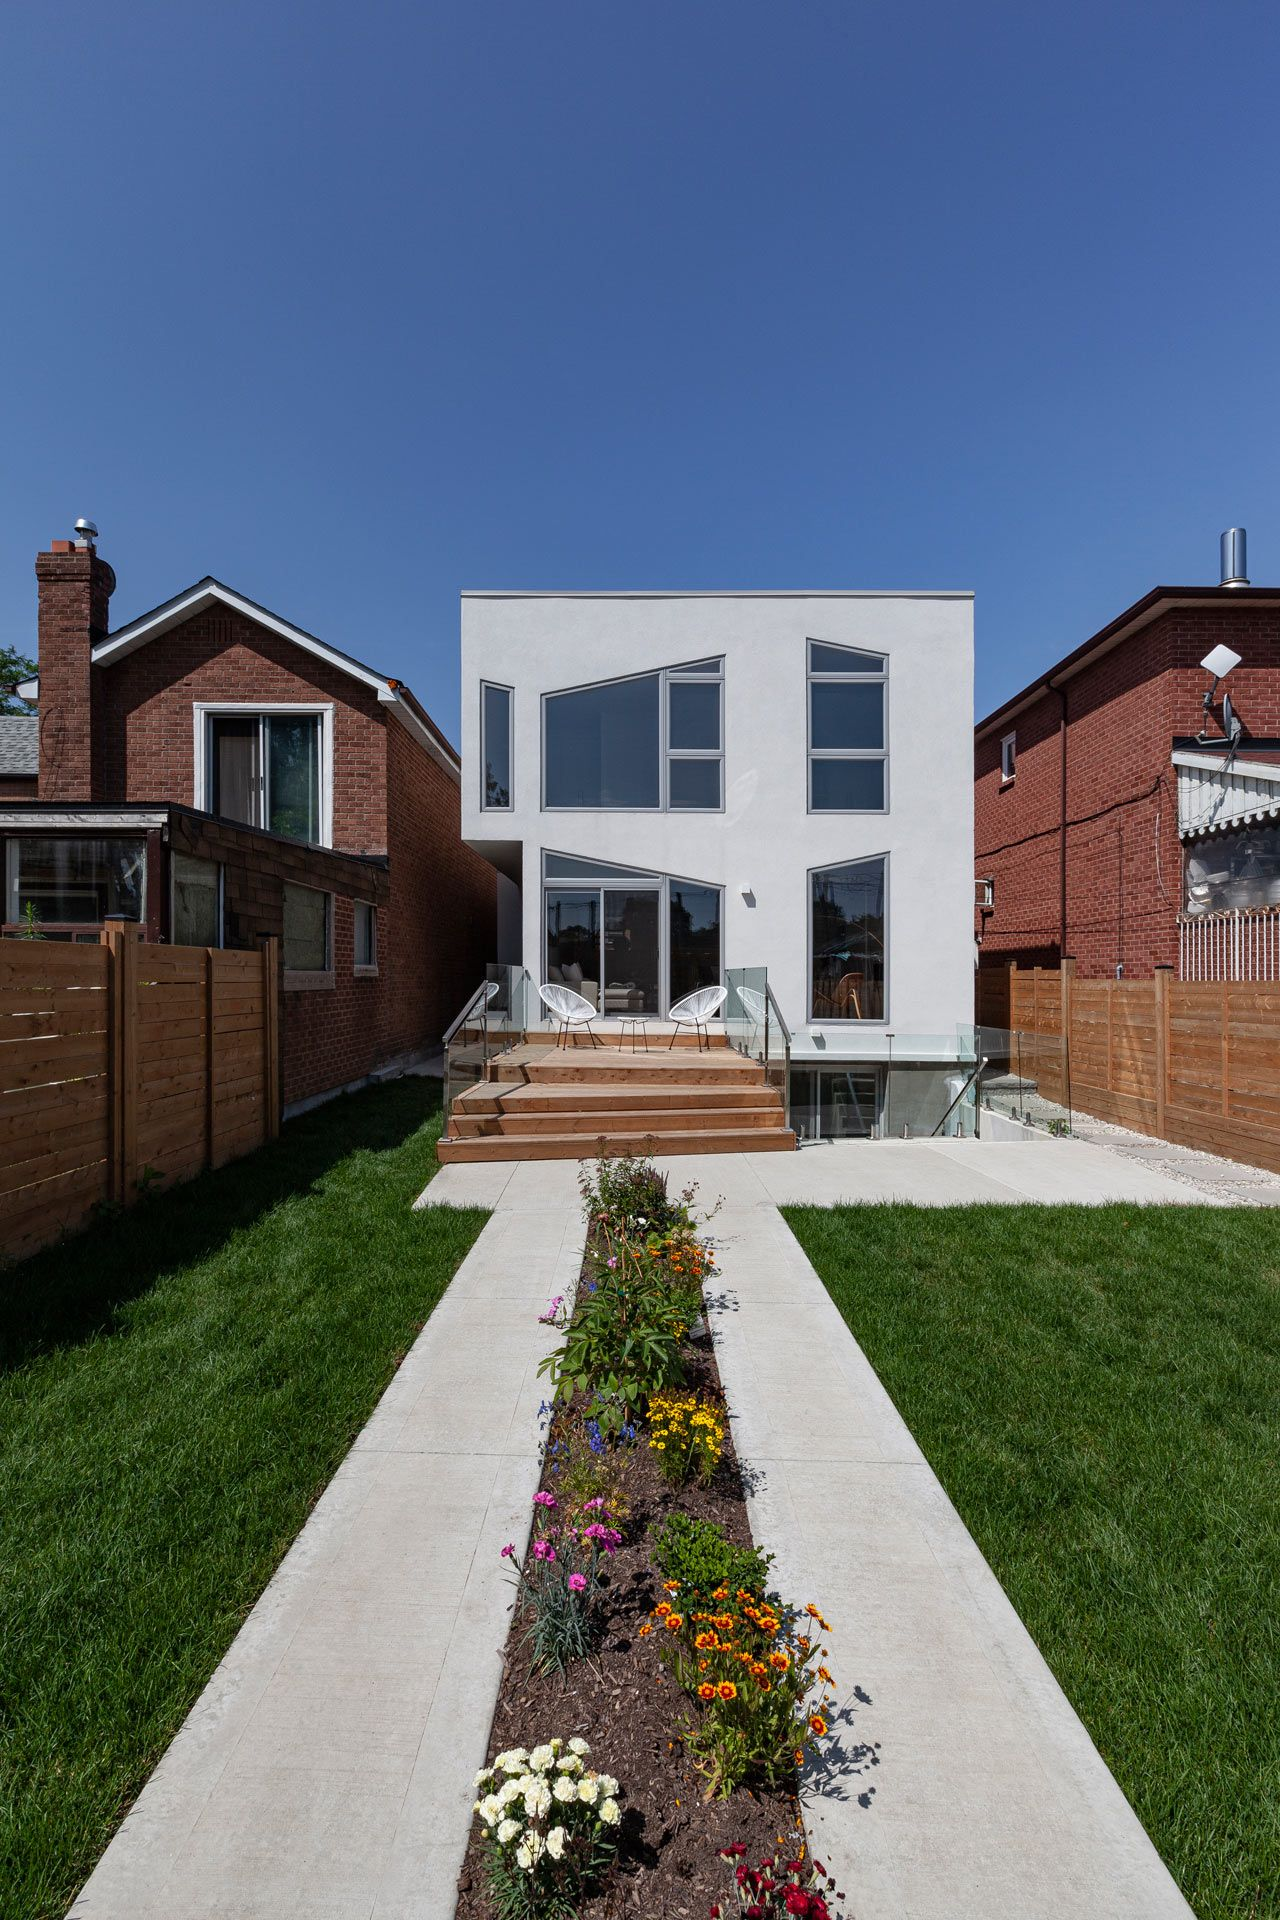 Toronto's Mask House Explores Geometry and Spatial Order